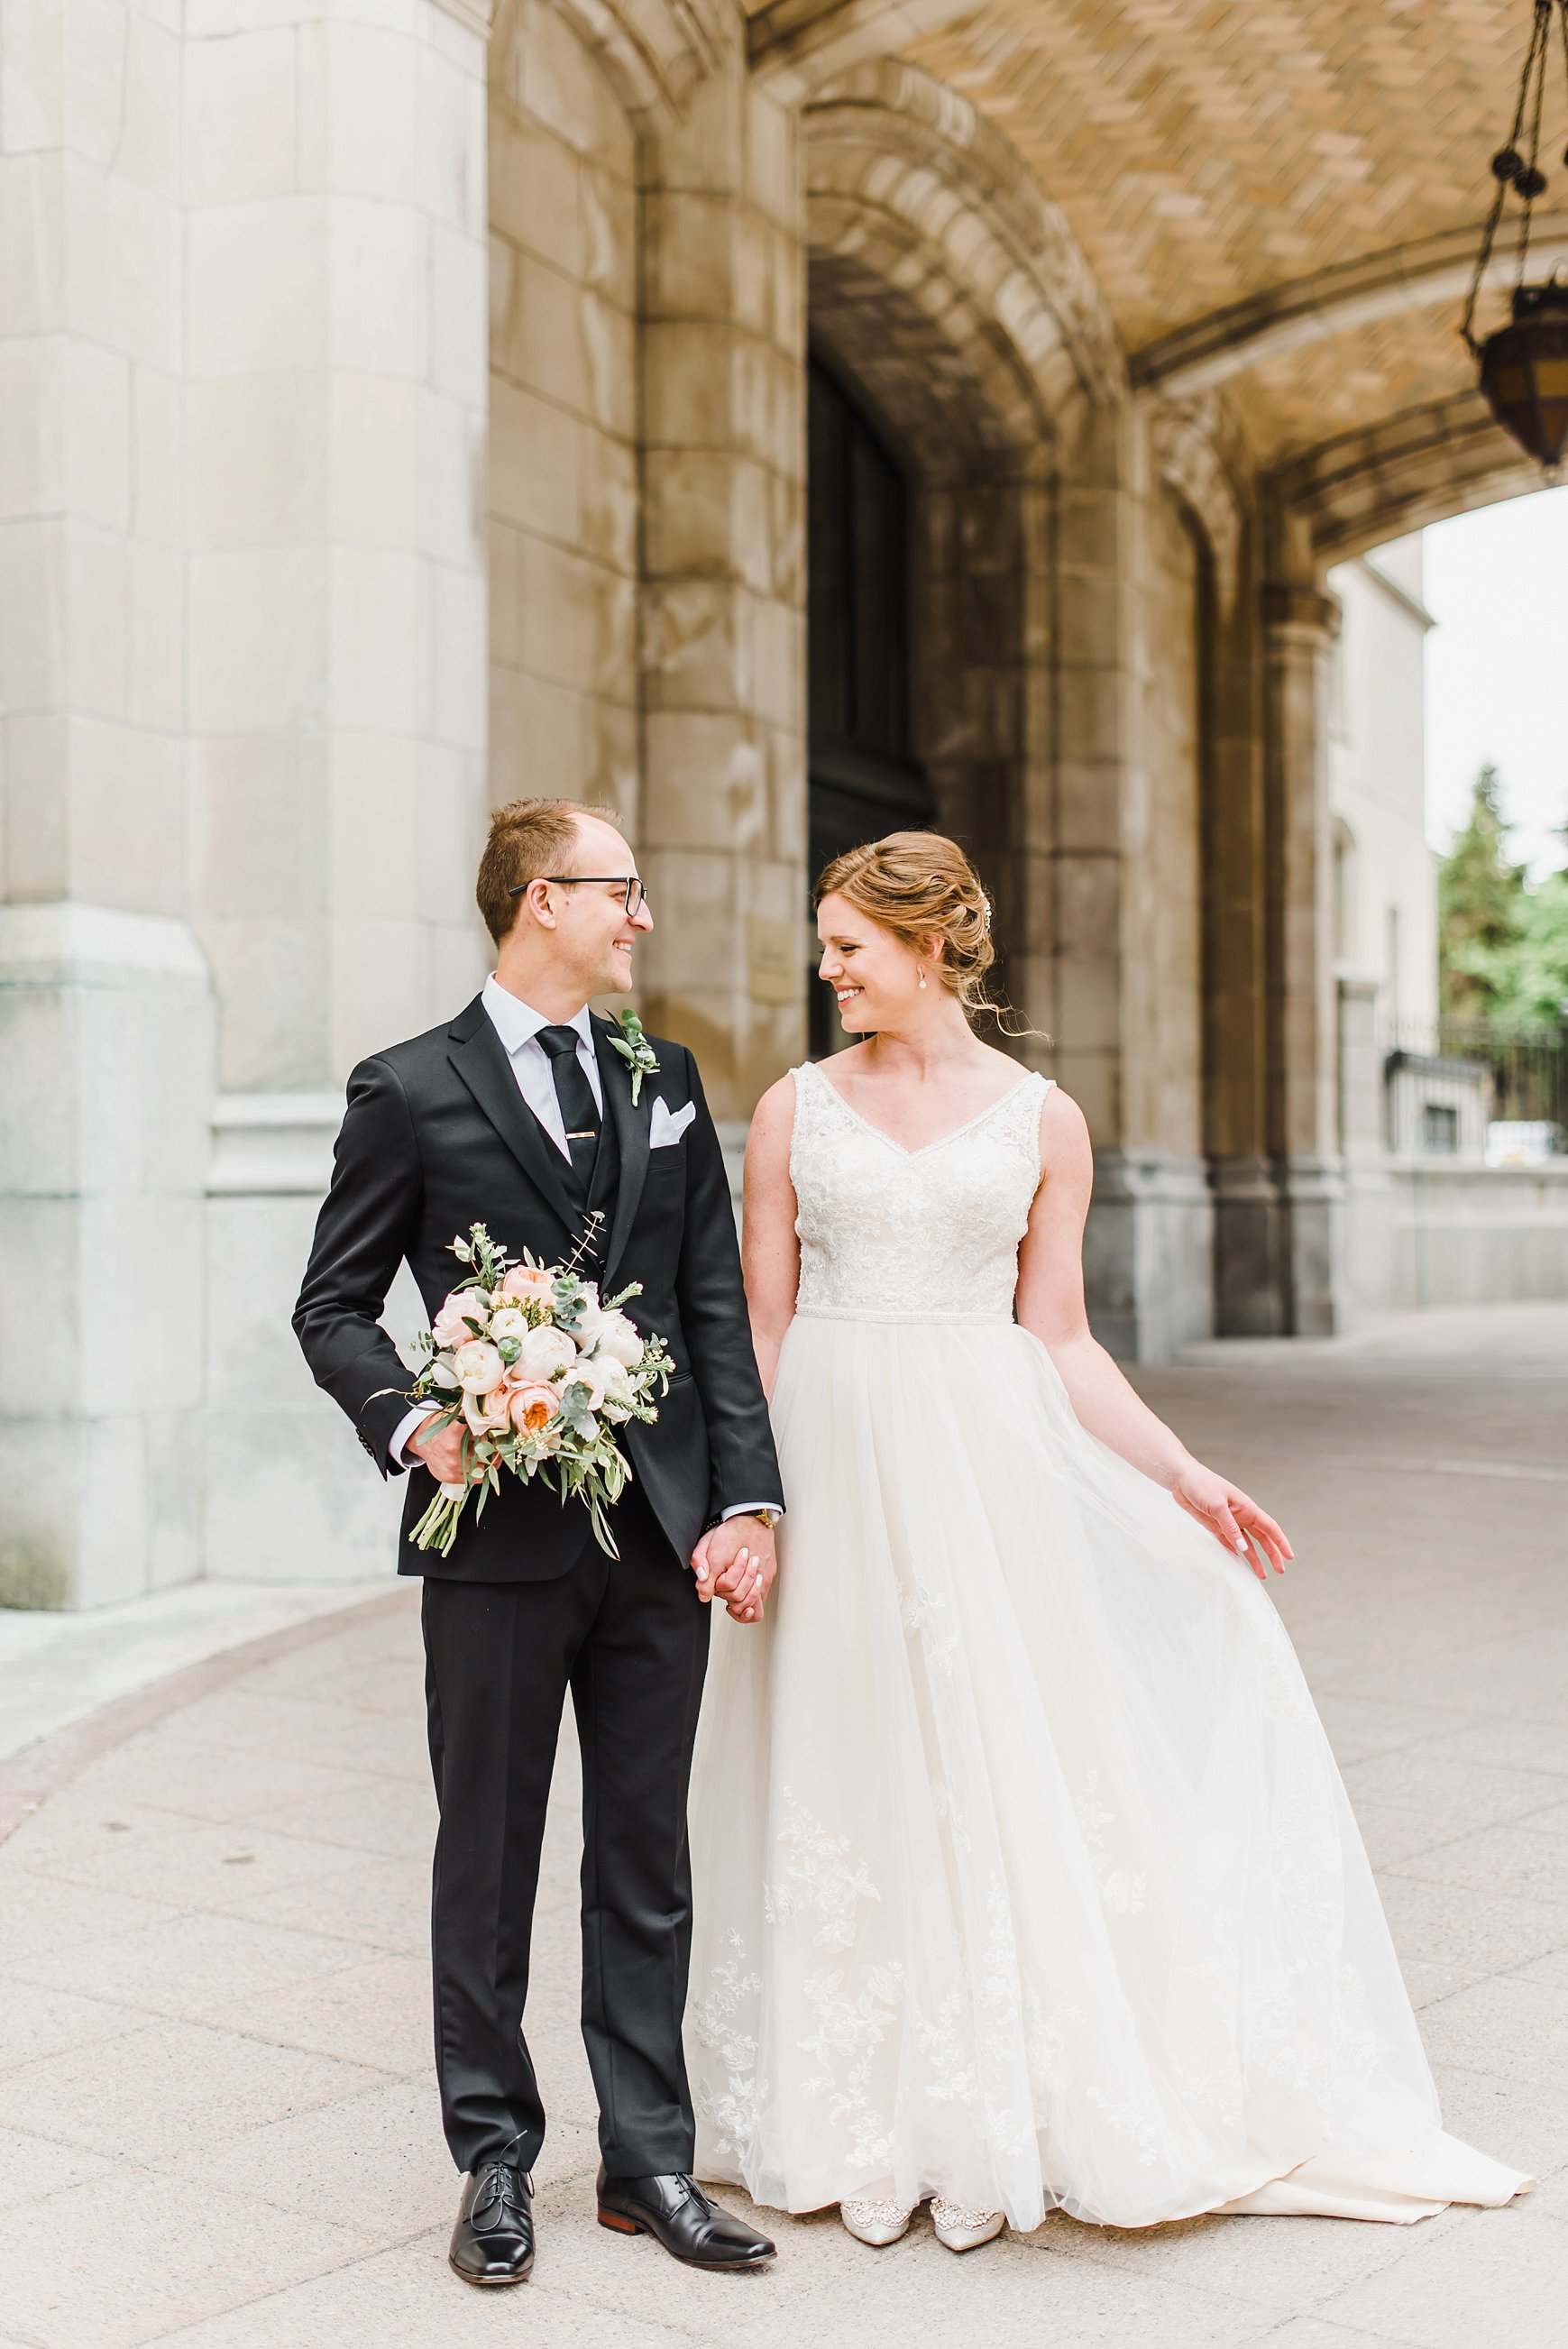 light airy indie fine art ottawa wedding photographer | Ali and Batoul Photography_0332.jpg